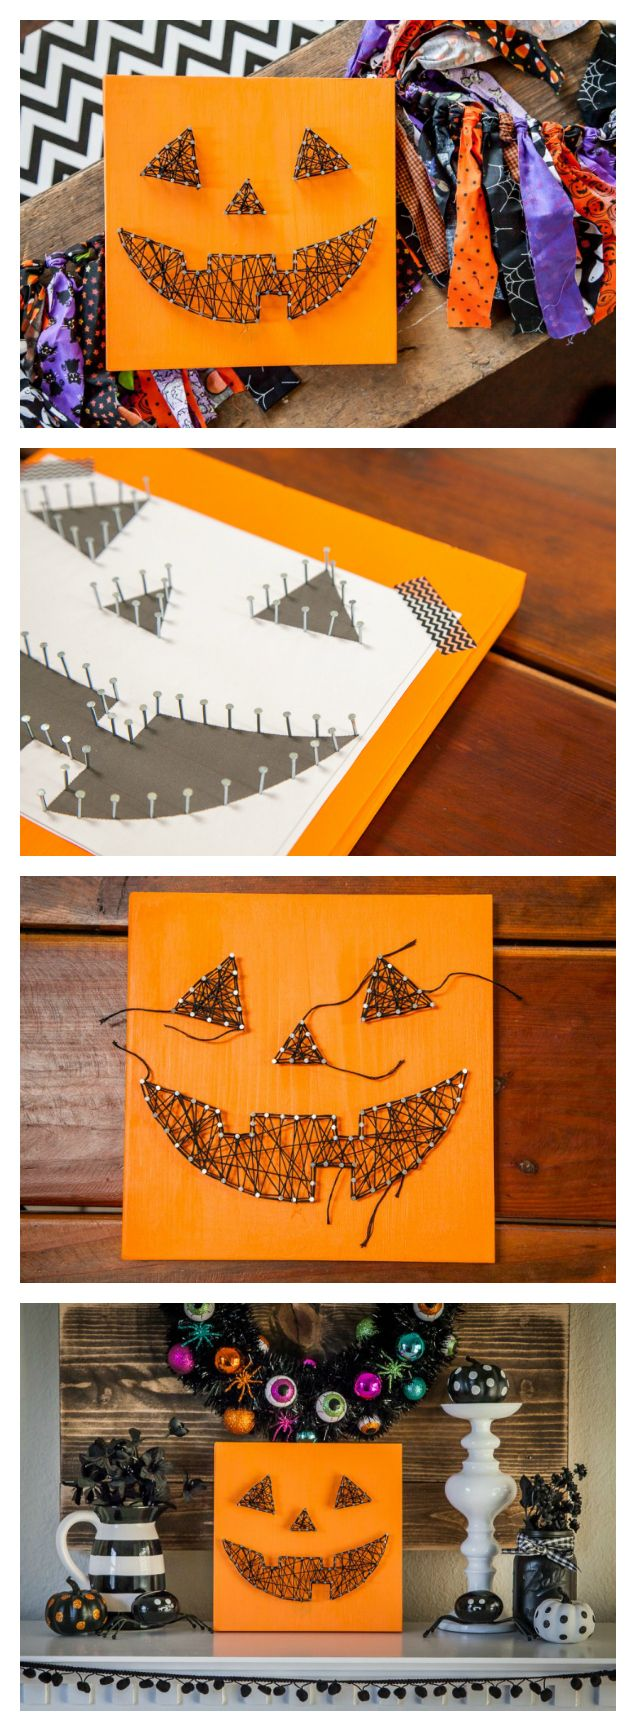 best 20 halloween crafts ideas on pinterest kids halloween crafts halloween crafts for kids and halloween decorations inside - Halloween Arts And Crafts For Kids Pinterest